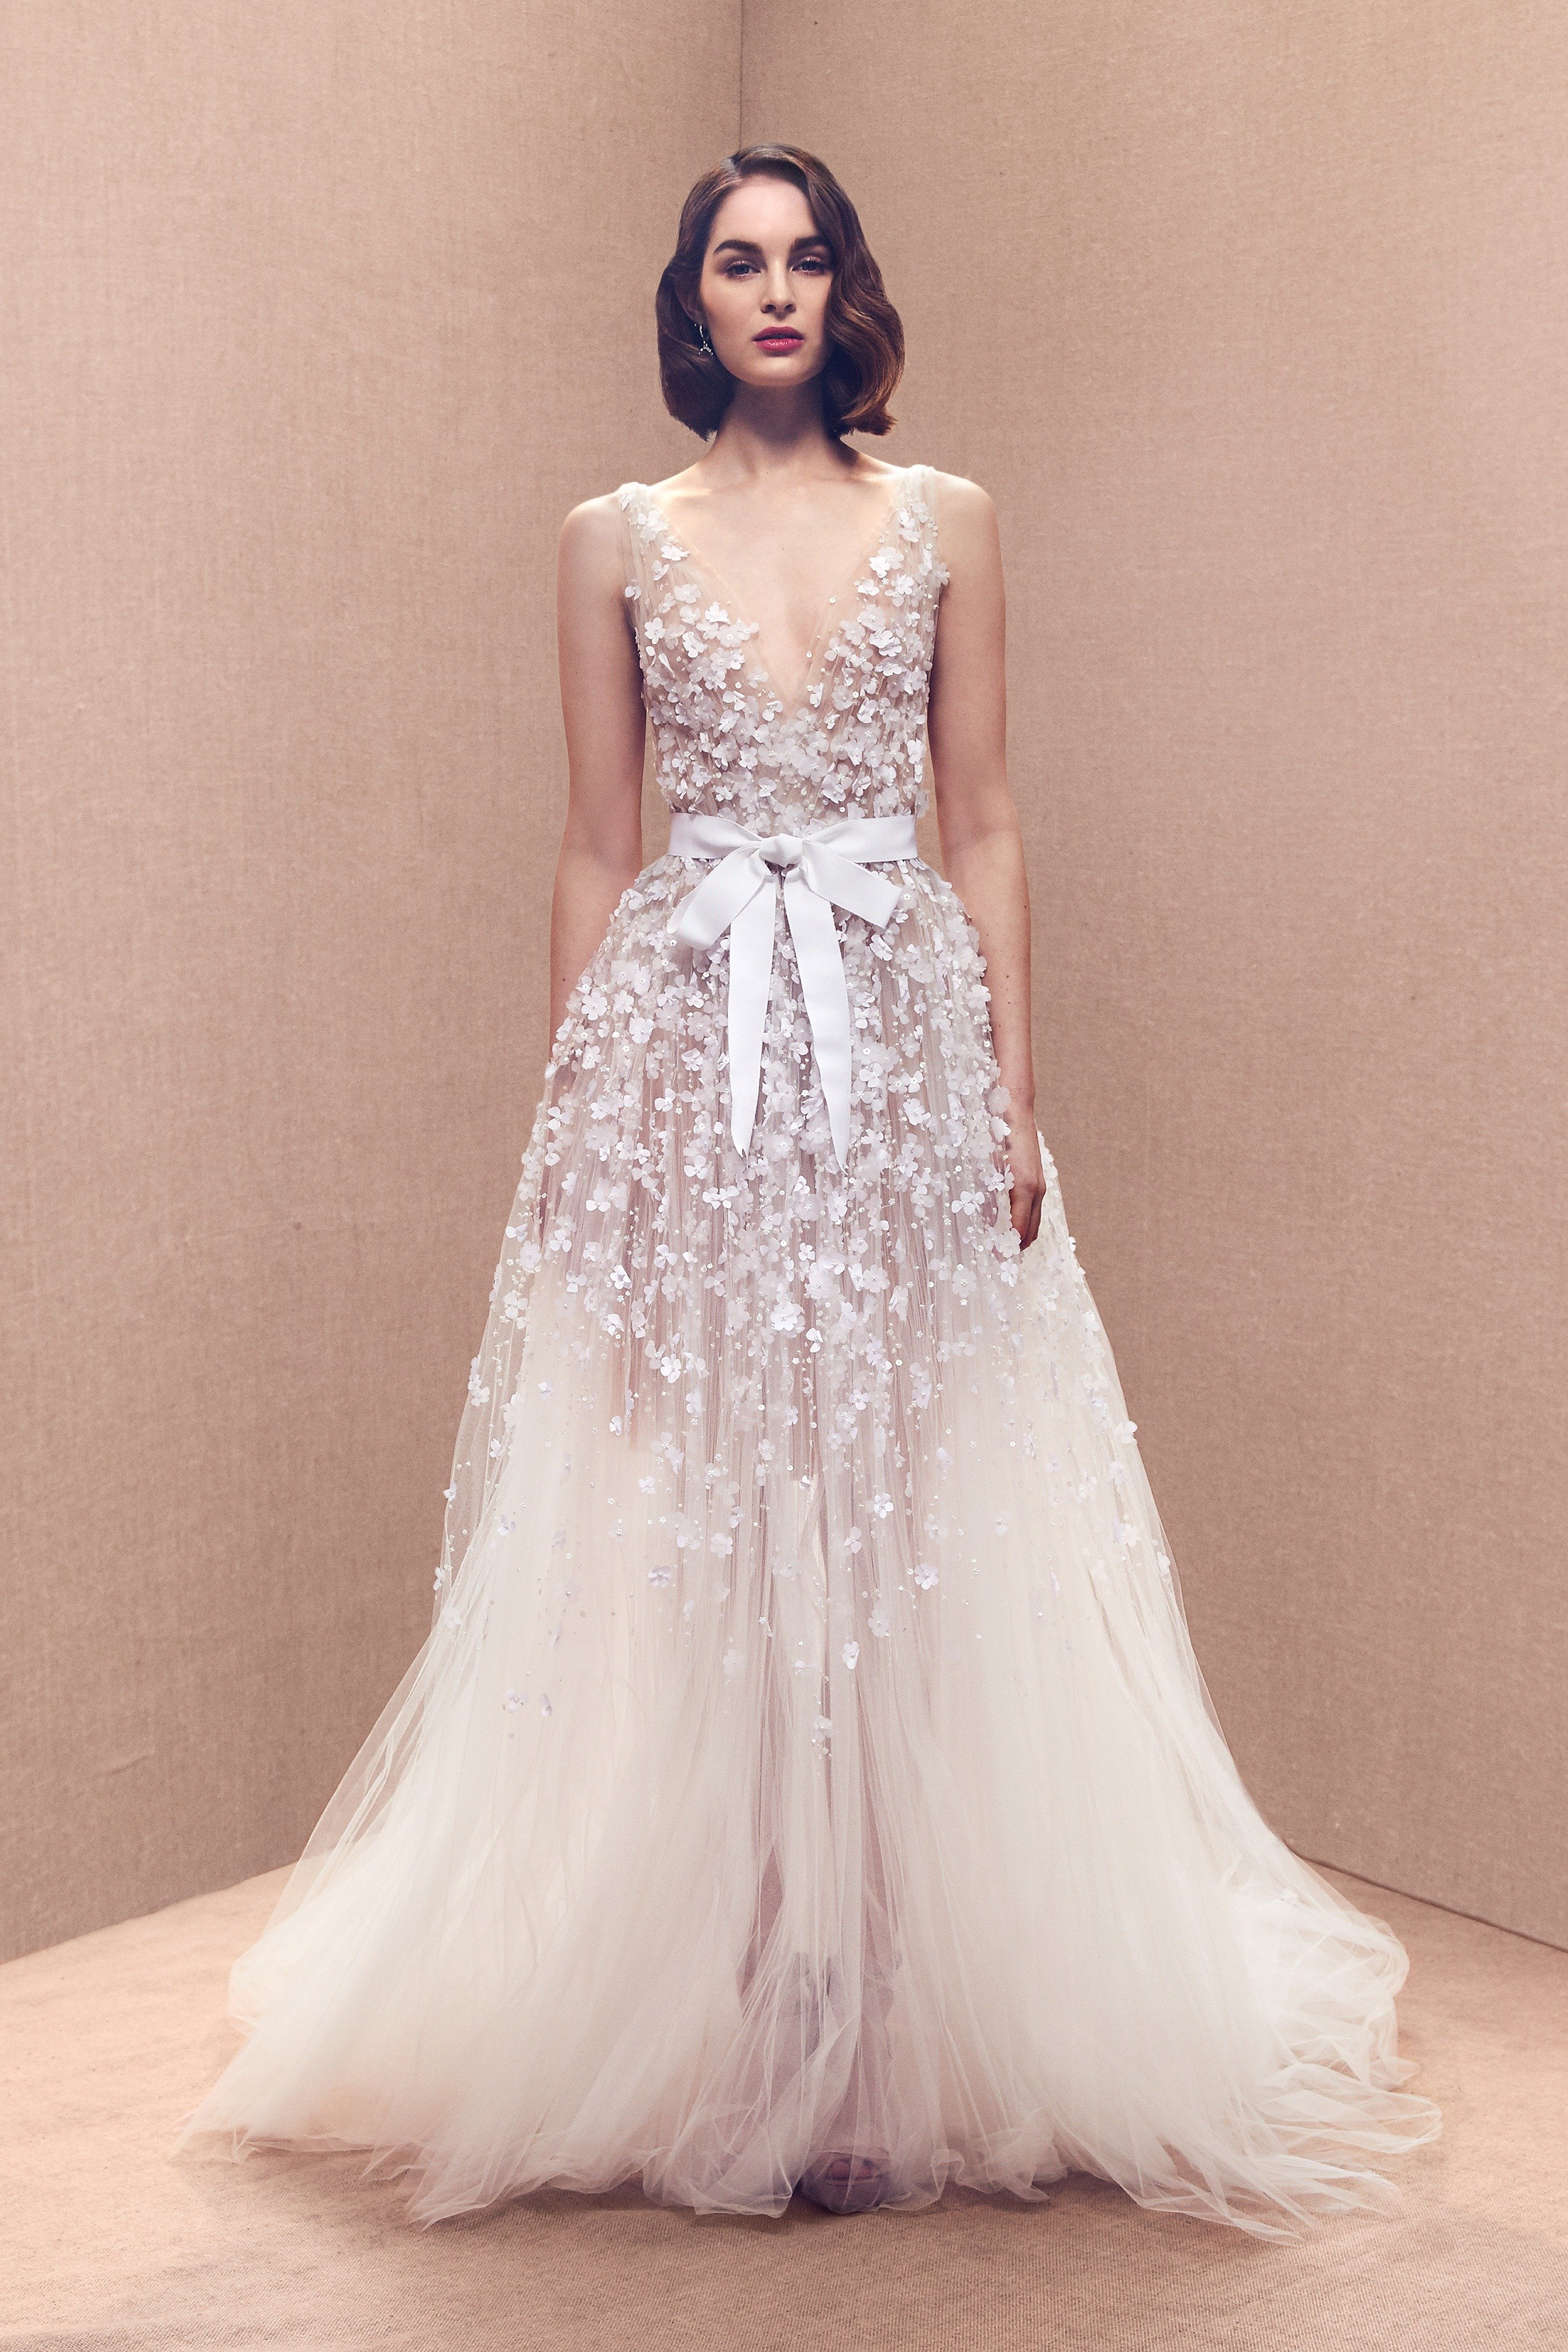 V-neck tulle embroidered gown with sash